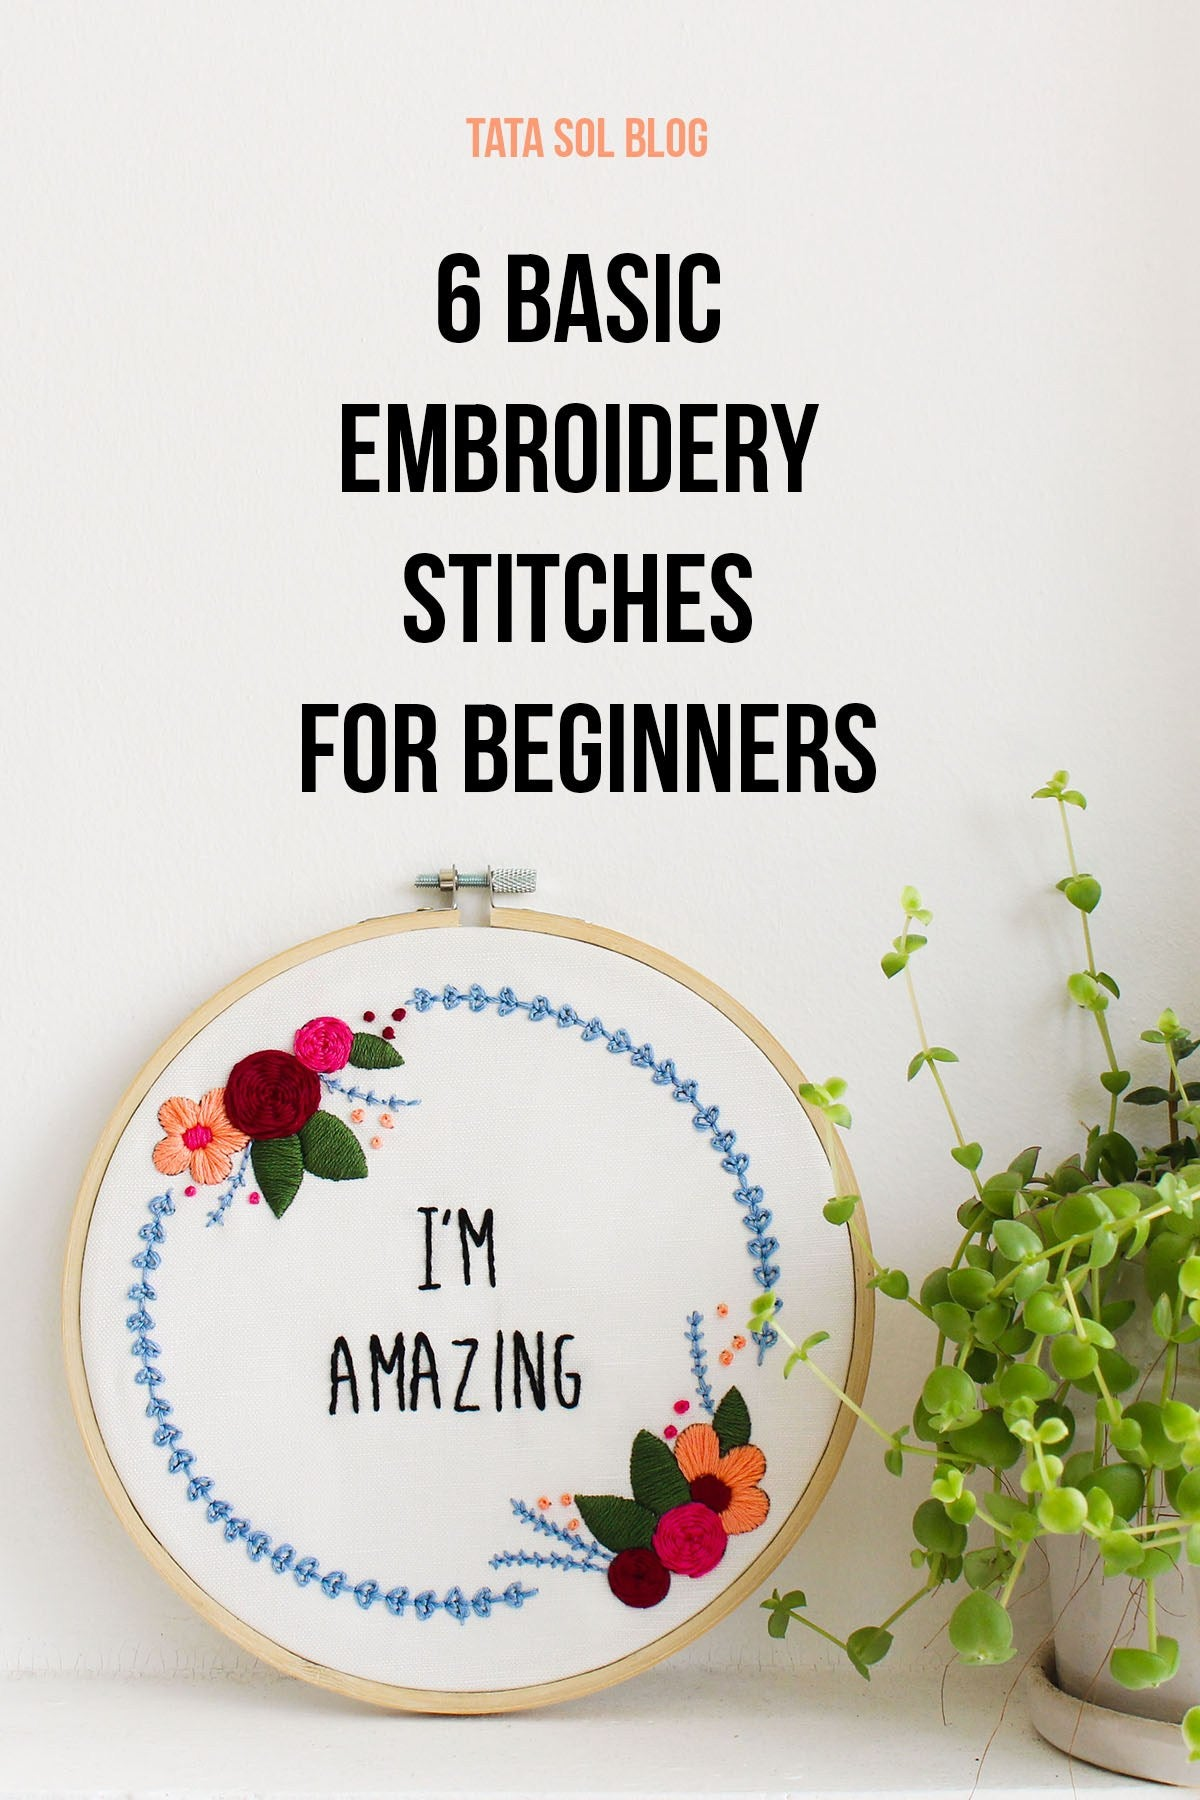 6 Basic Embroidery Stitches For Beginners